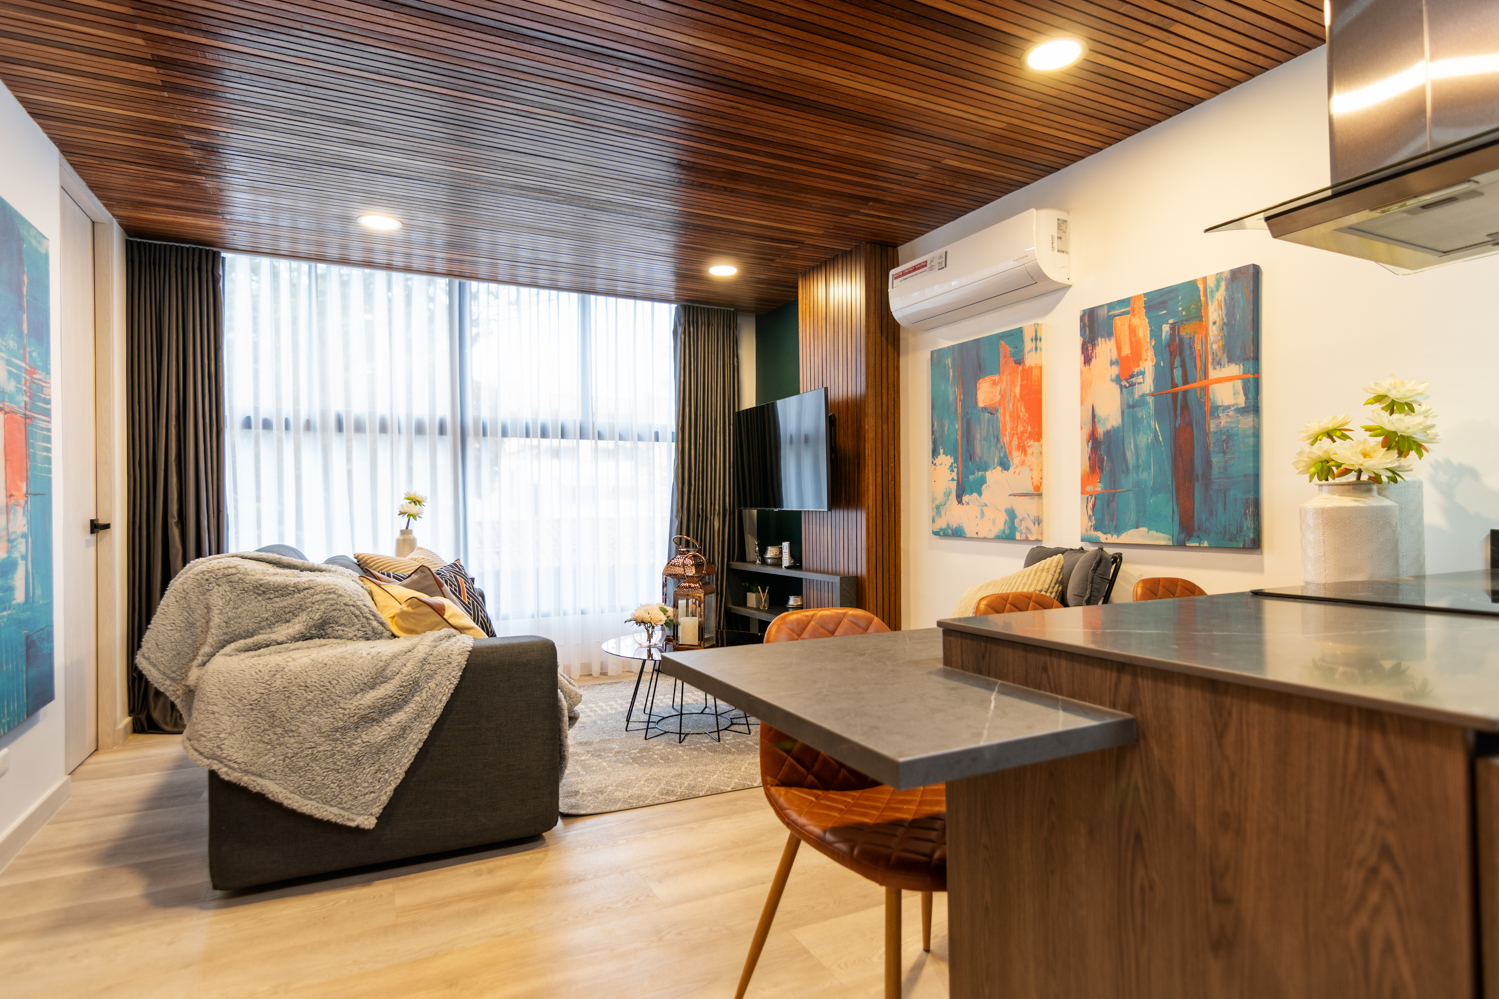 Manila Luxury Suite 301 – Charming And Classy 2 Bedroom Apartment